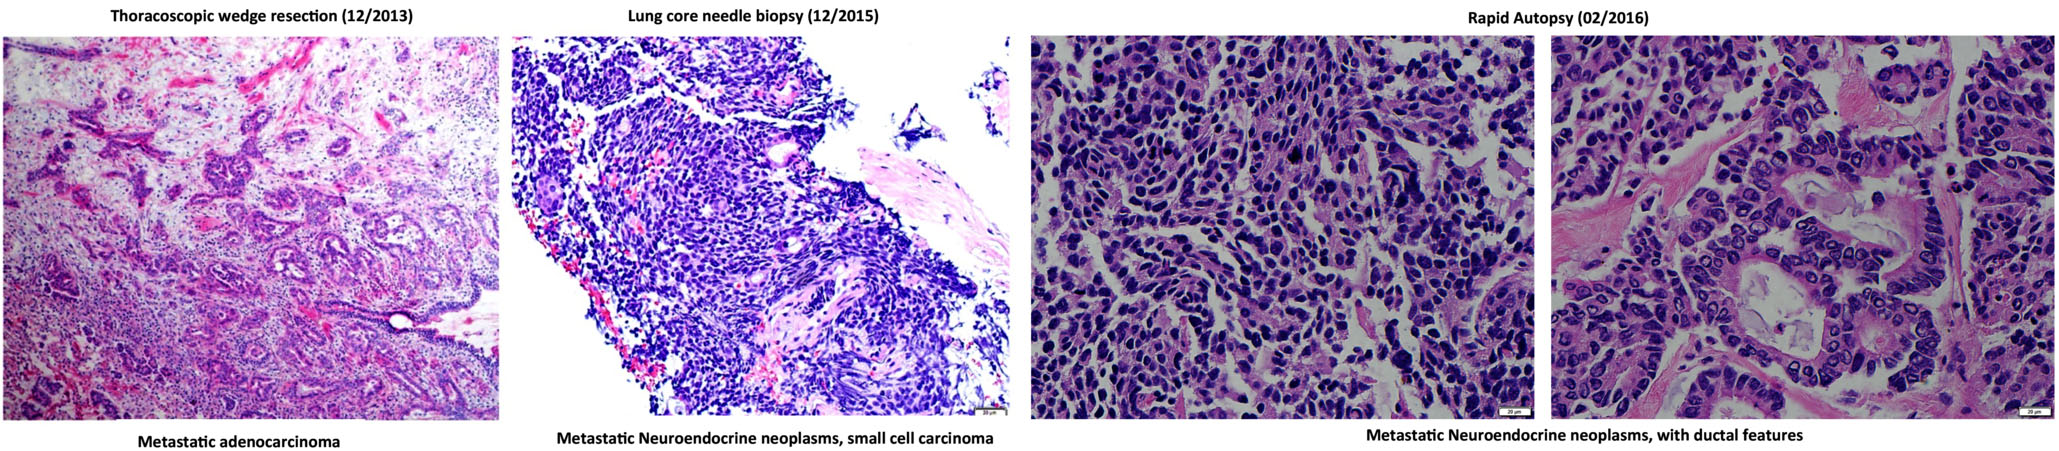 H&E staining of lung metastatic biopsy taken at the beginning (left) and end (middle and right) of liquid biopsy follow up.